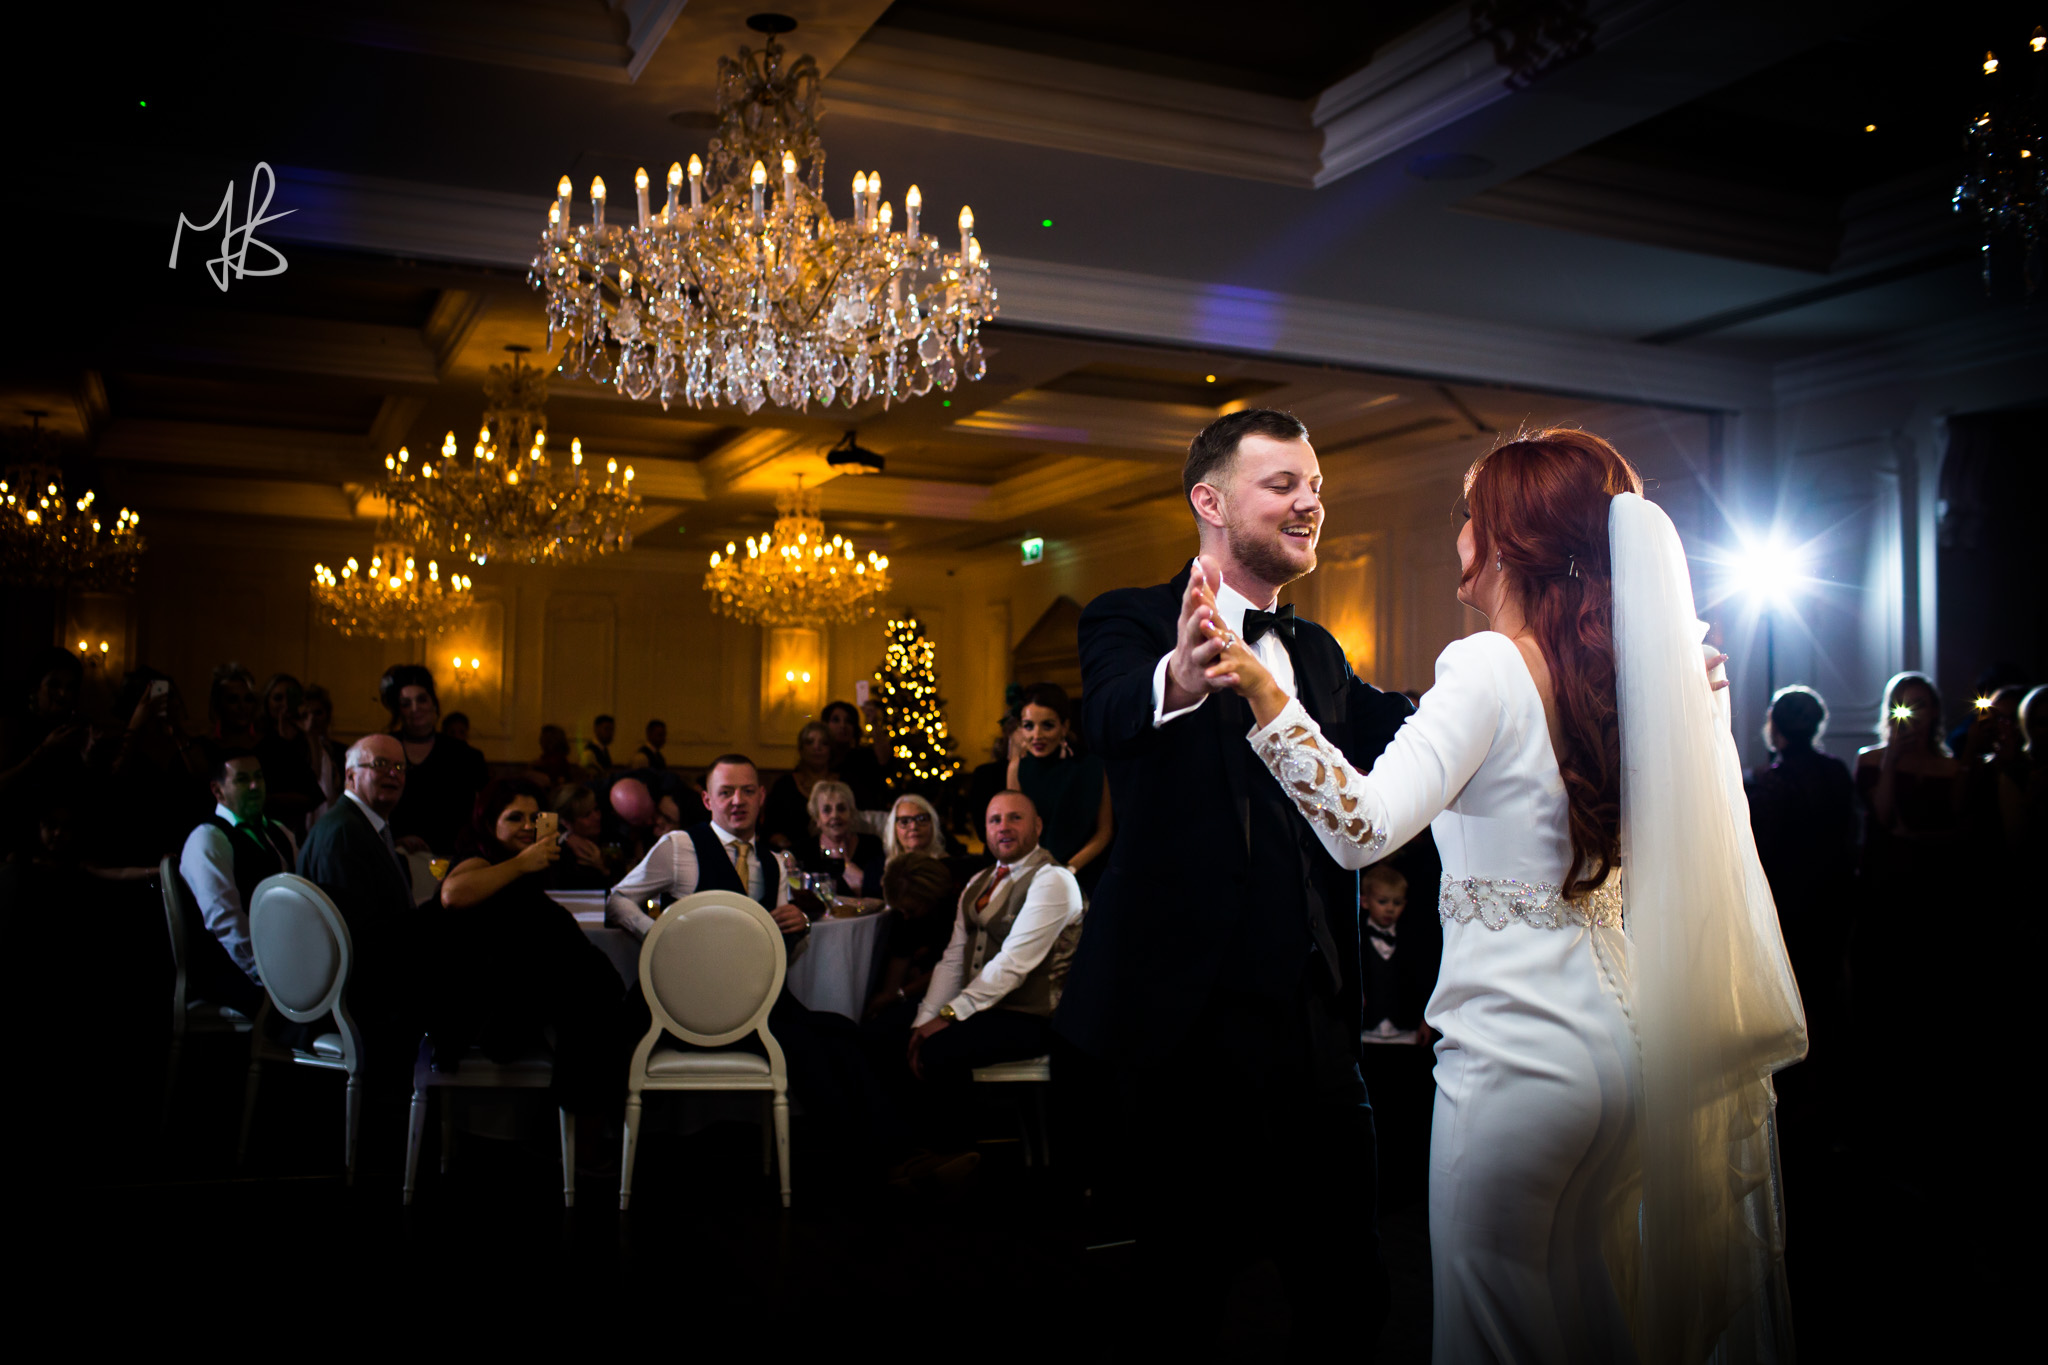 Mark_Barnes_Northern_Ireland_wedding_photographer_Lough_Erne_Resort_Eniskillen_Wedding_photography-Previews-336.jpg